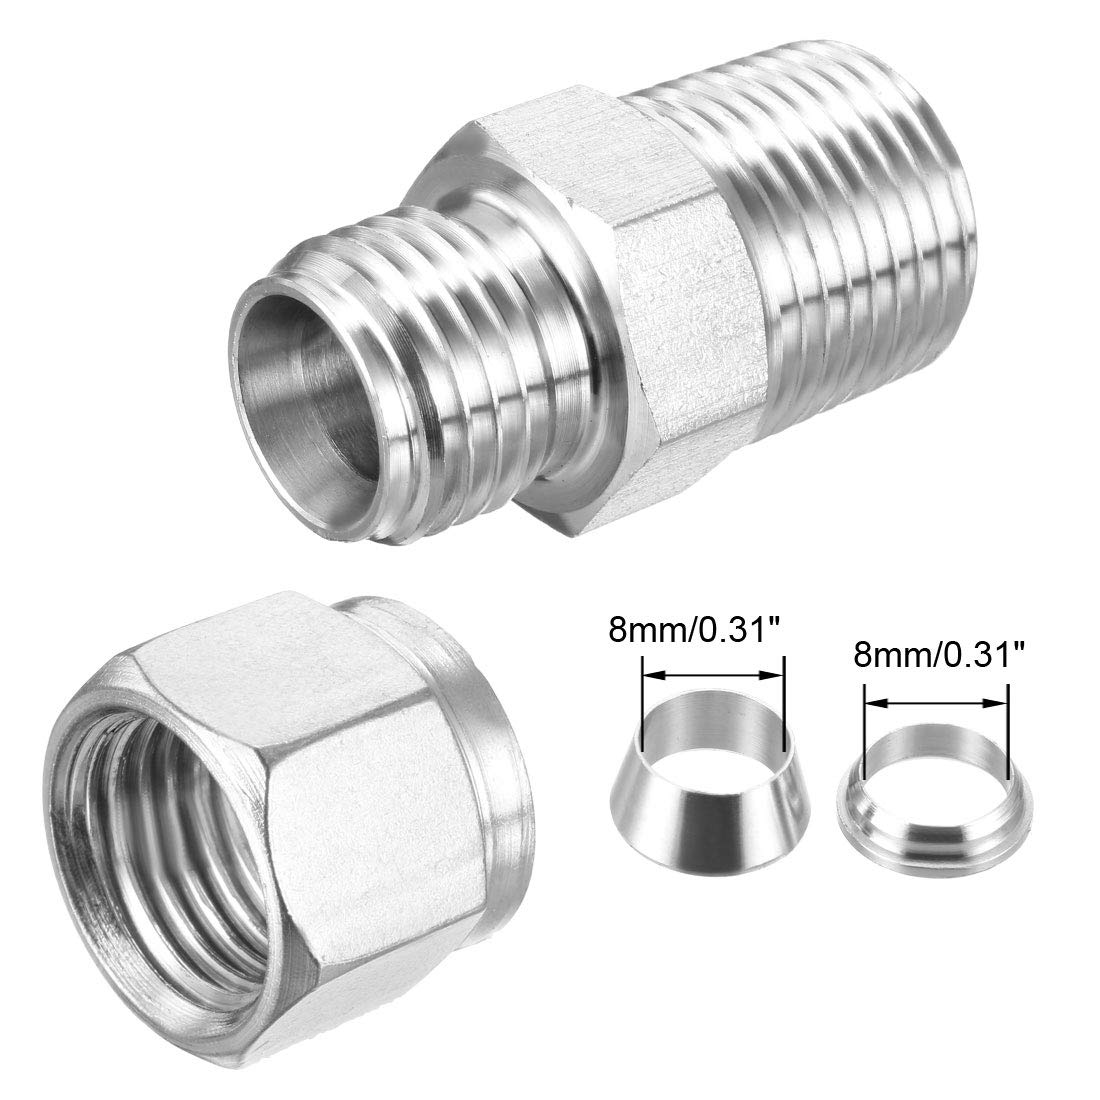 L 316 STAINLESS STEEL COMPRESSION FITTINGS  08MM X 08MM OD EQUAL COUPLER ST//ST